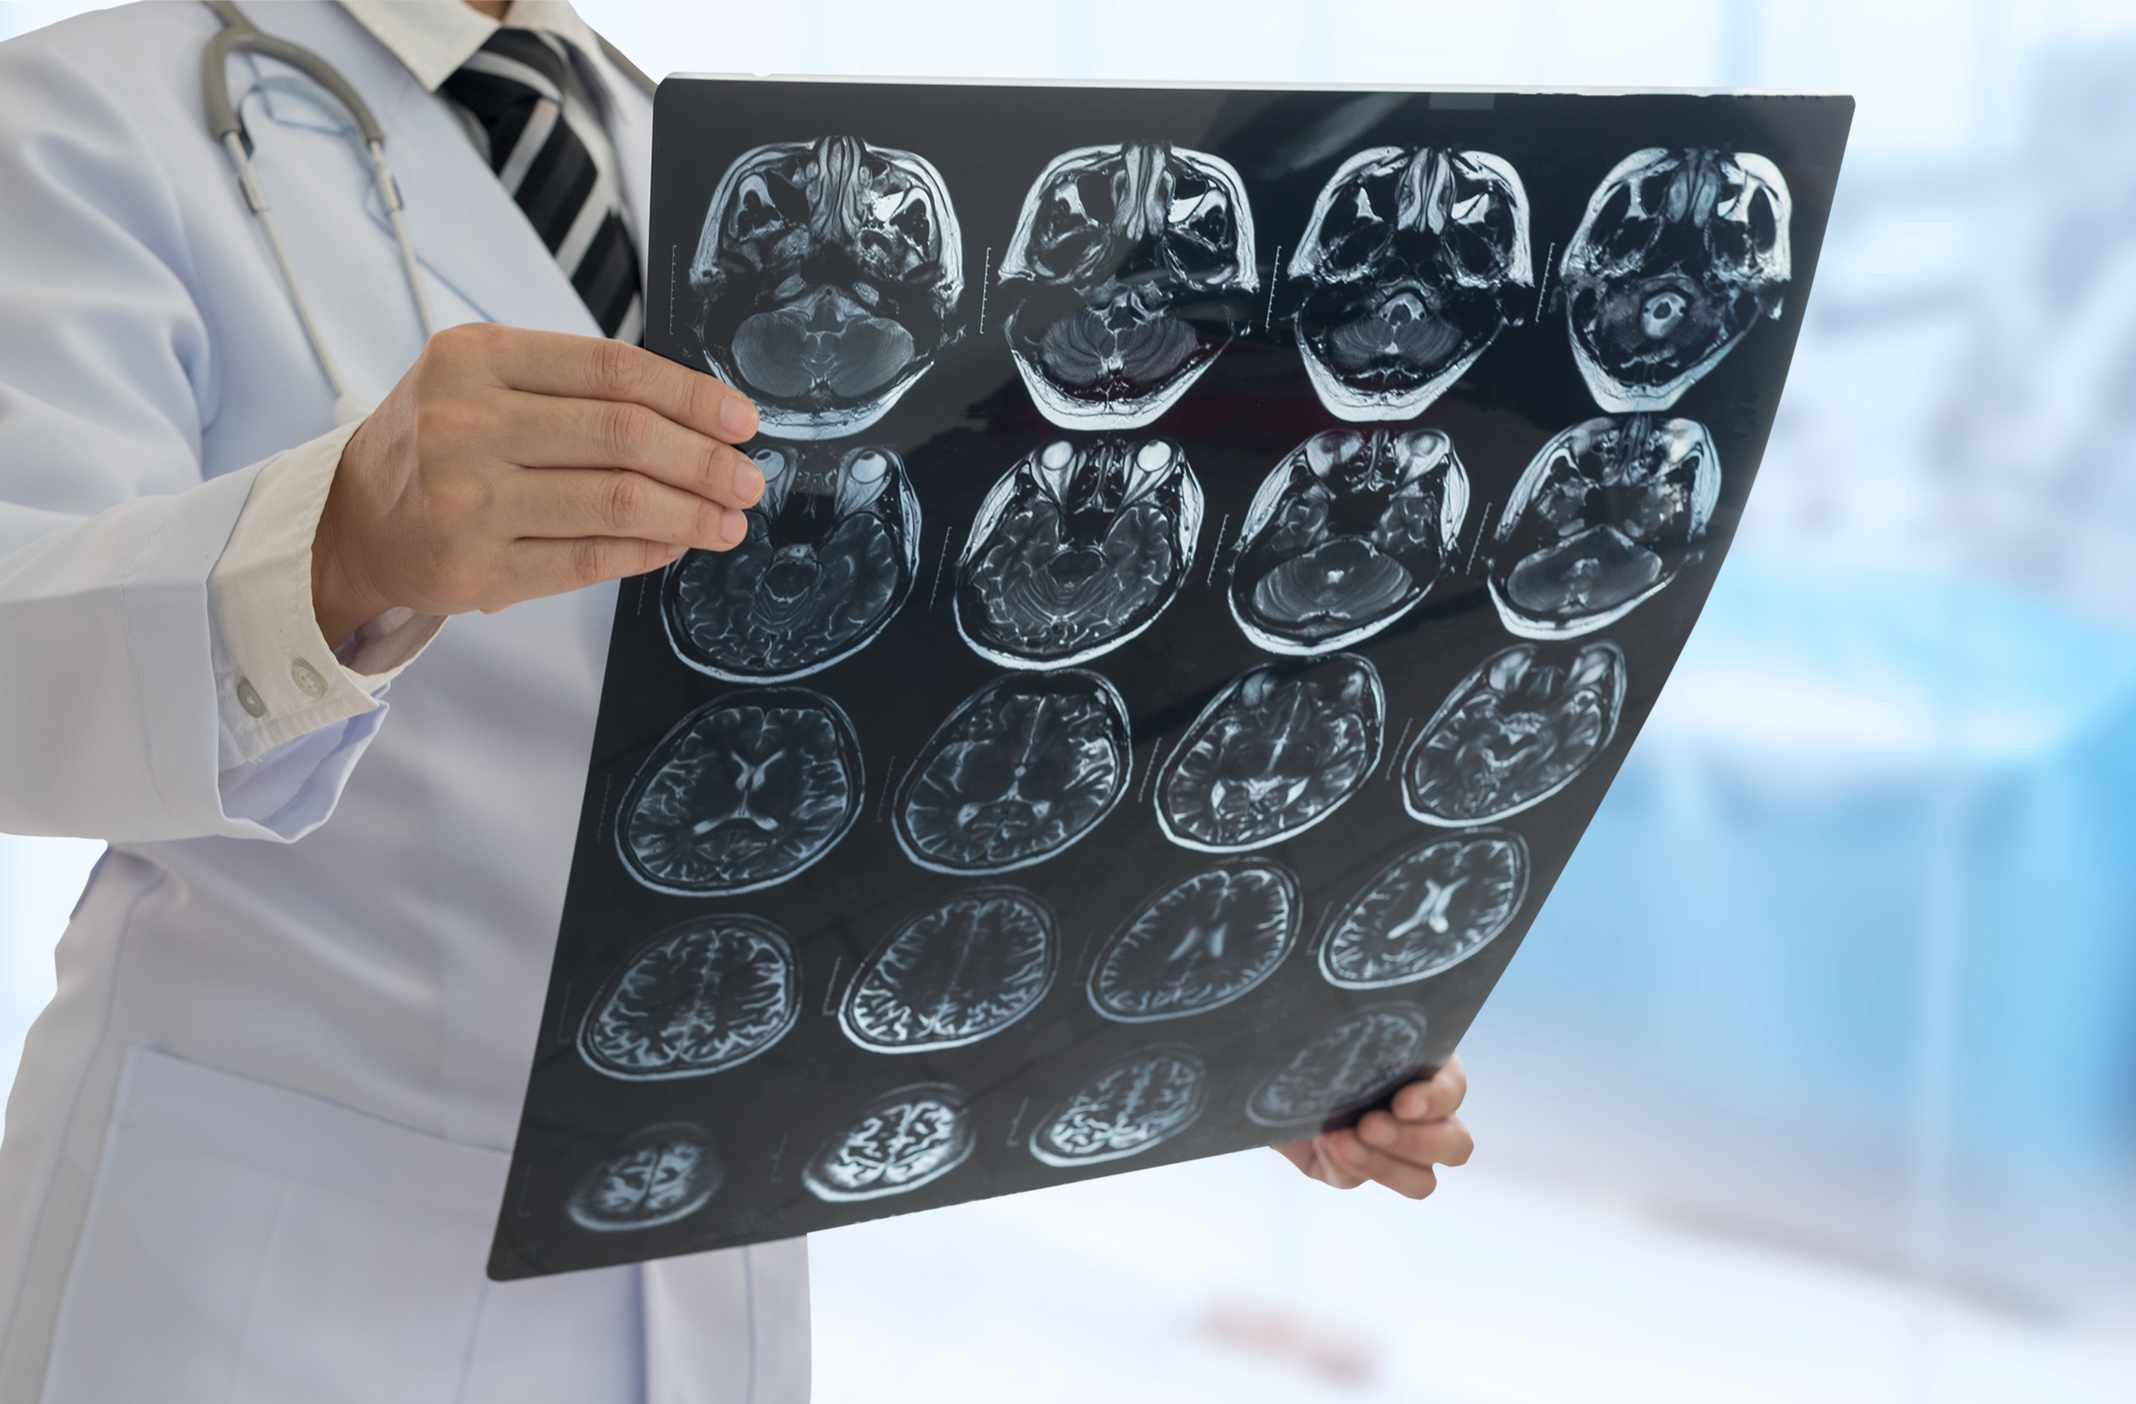 A doctor looking at a brain chart